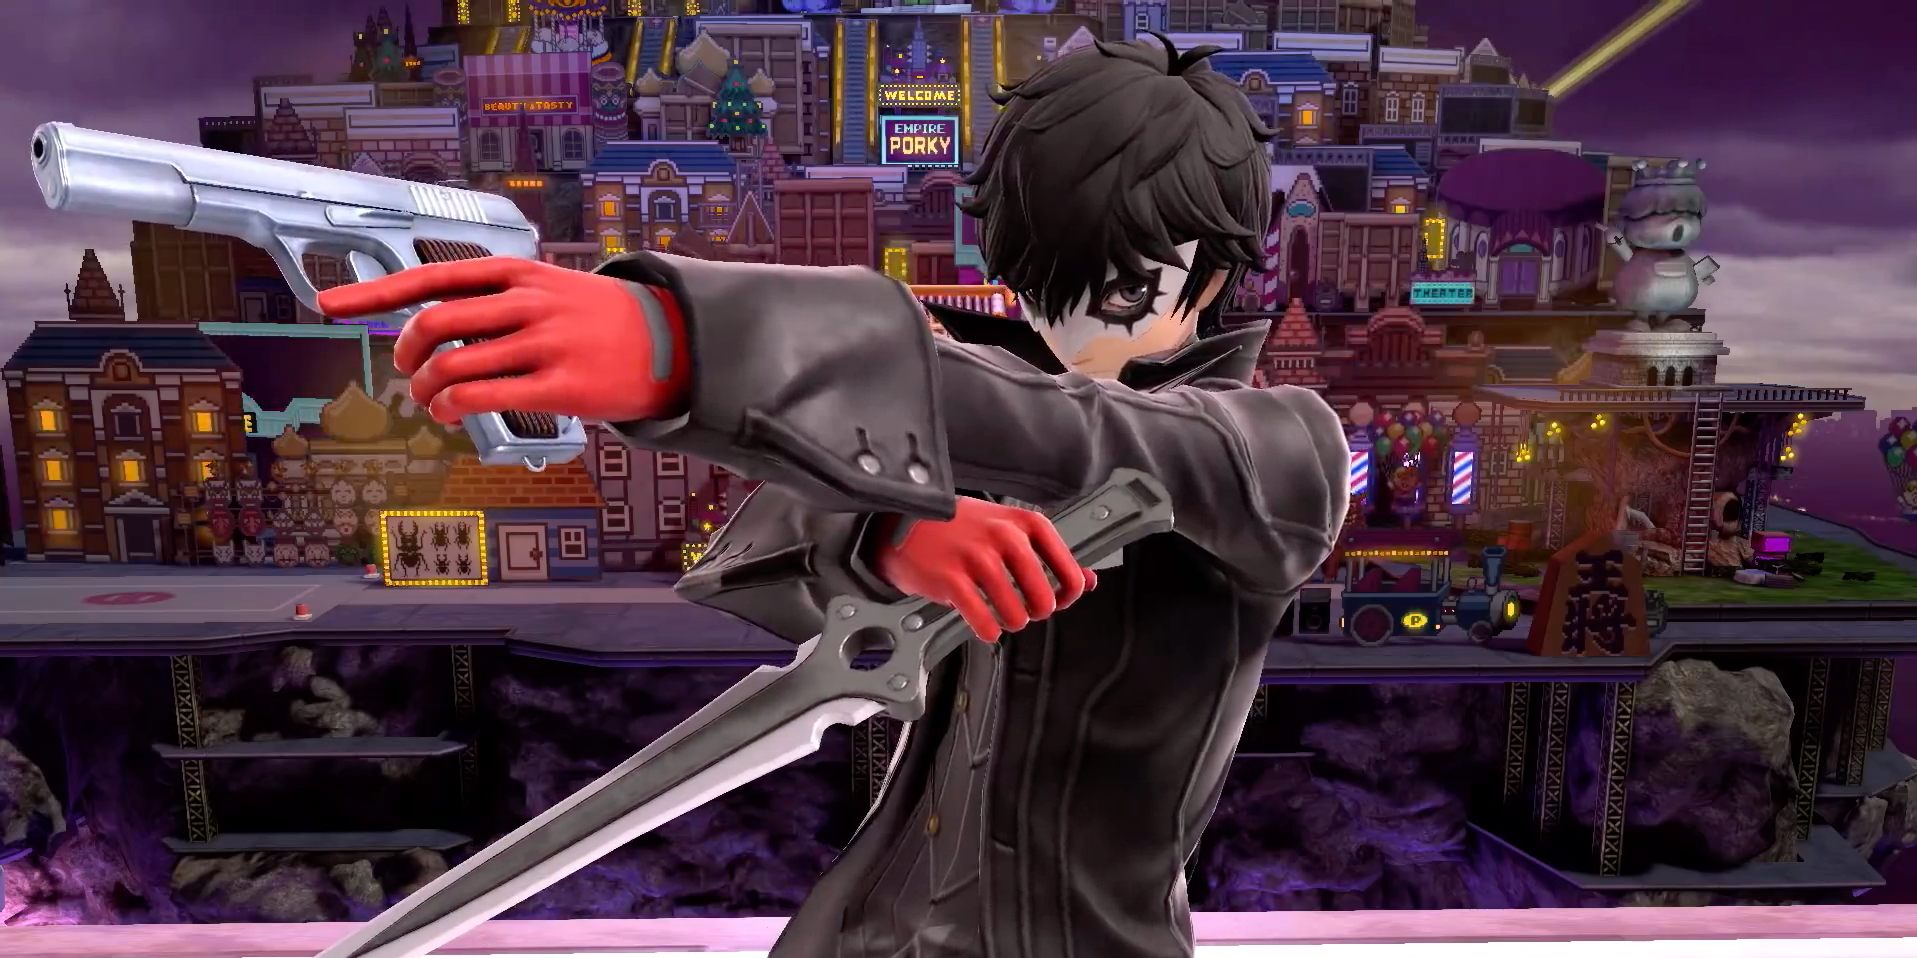 Joker Brings 'Persona 5' Style to 'Smash Bros. Ultimate', Plus Video Editor